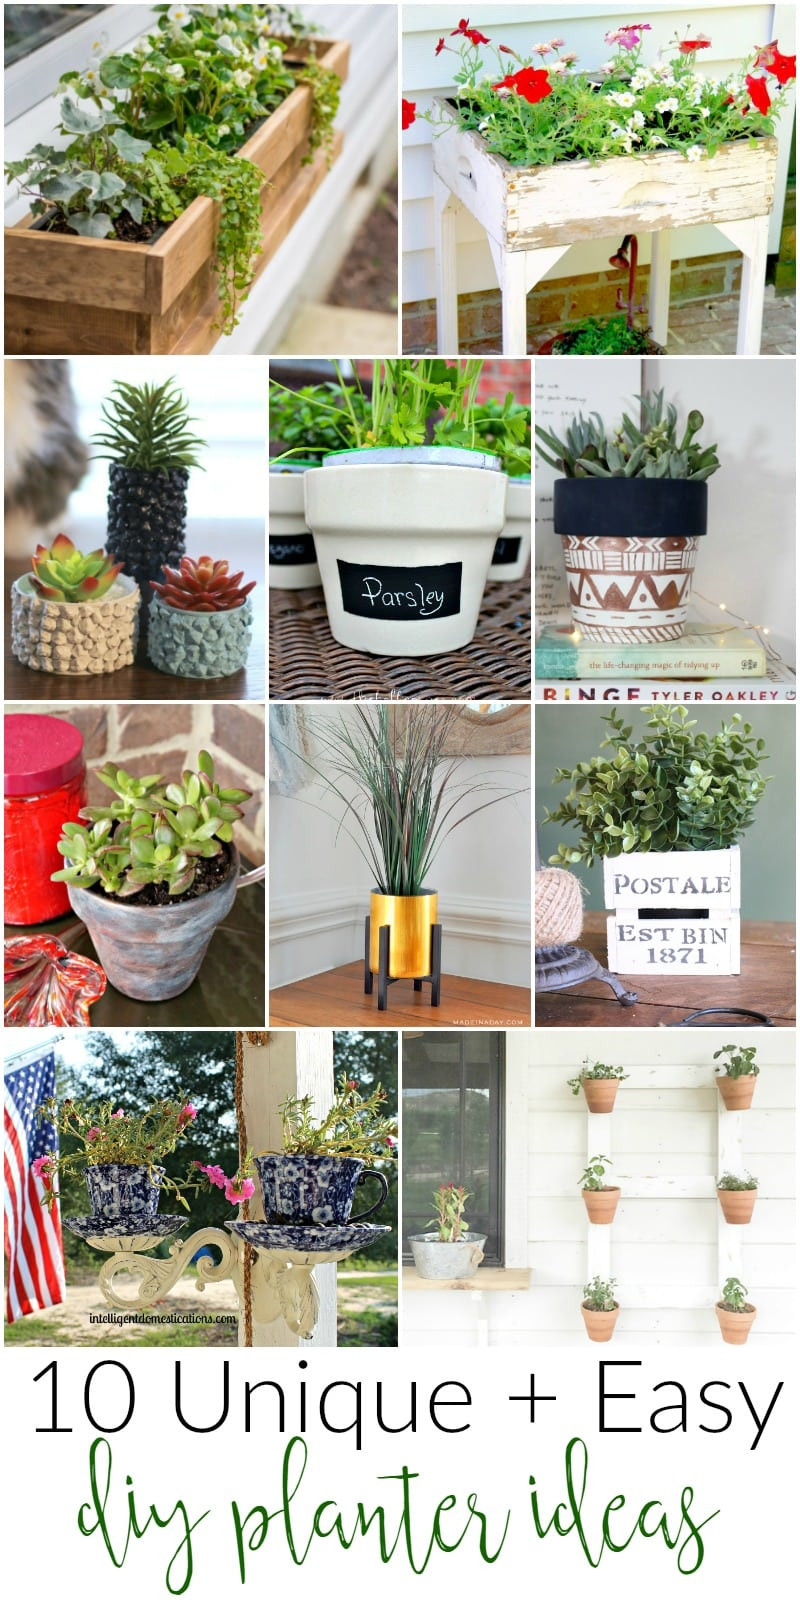 Best ideas about DIY Planter Ideas . Save or Pin DIY Planter Ideas for the Home MM 151 Now.